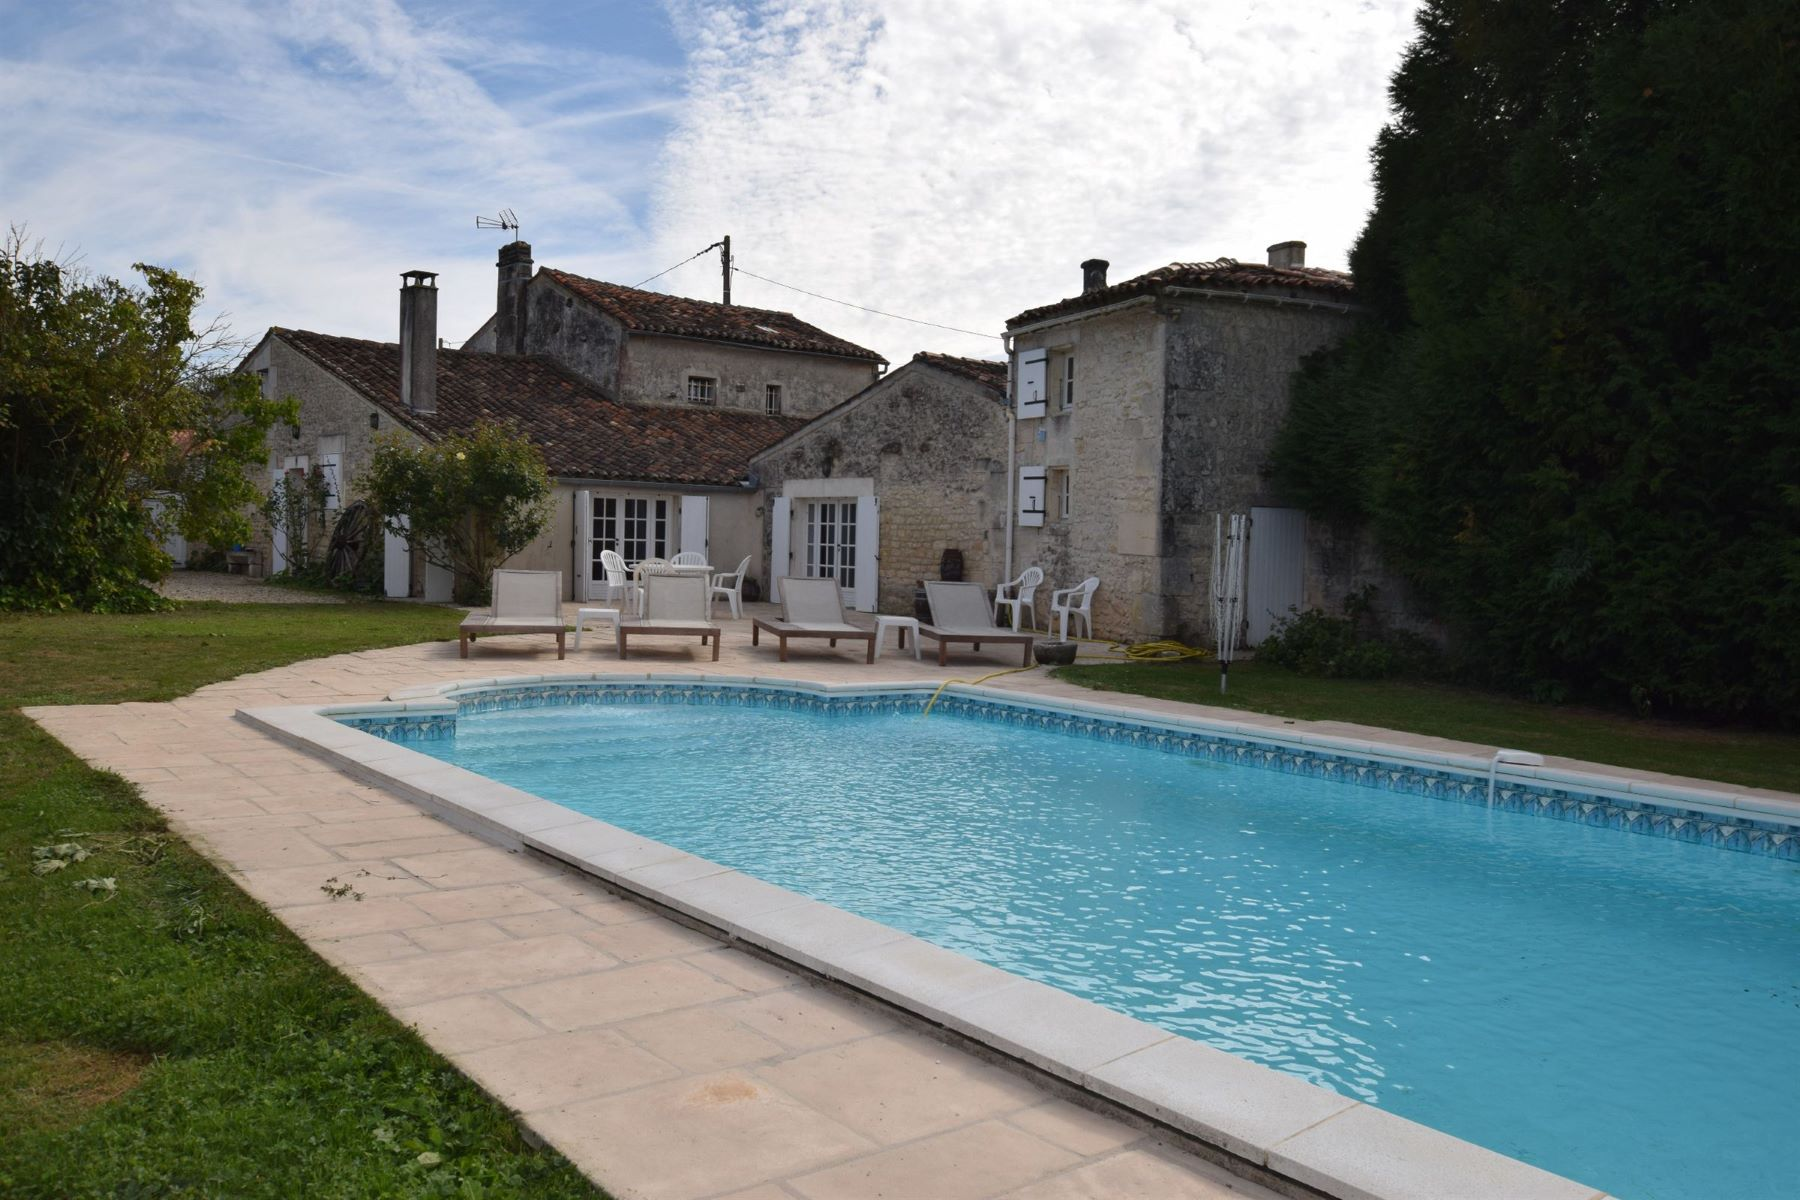 Single Family Home for Sale at Stone house with pool and barn Other Poitou-Charentes, Poitou-Charentes, 16370 France